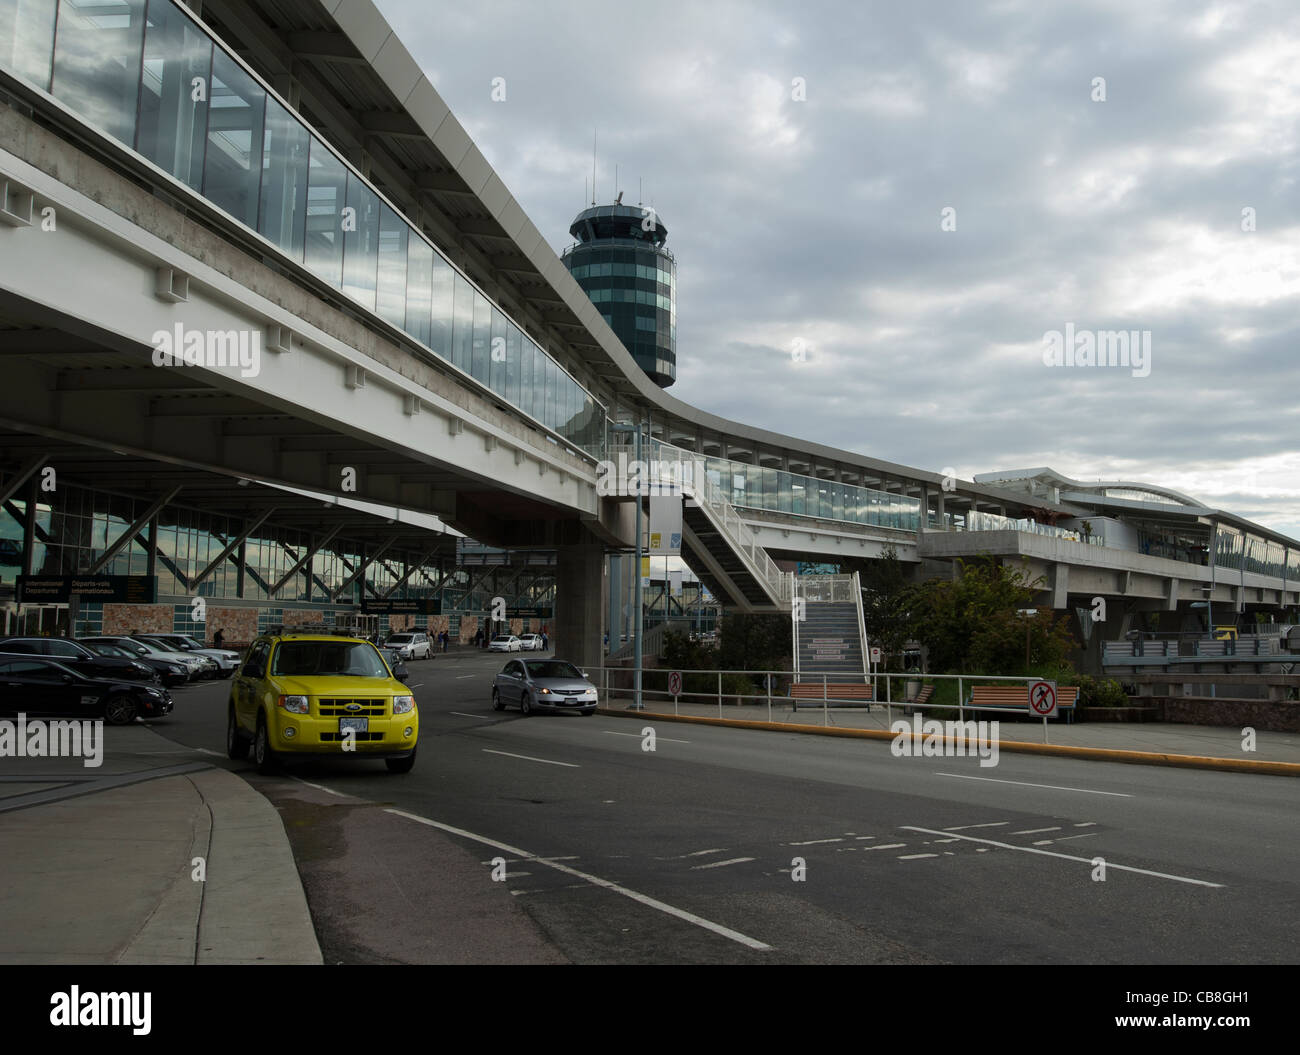 Taxicab outside Vancouver Airport at the Departures Level, Vancouver, British Columbia, Canada - Stock Image